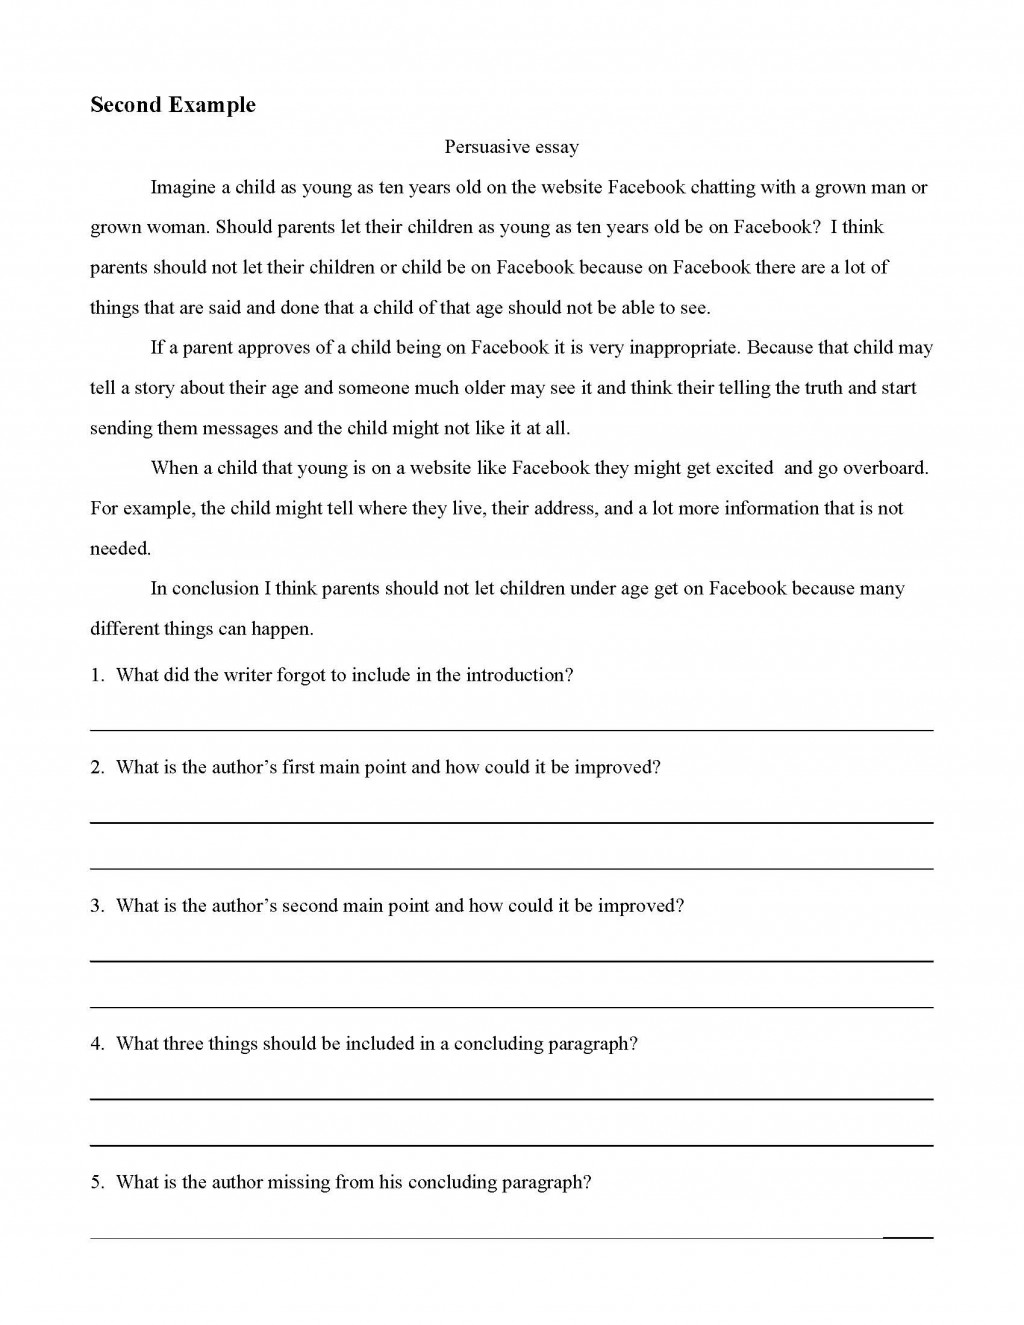 007 Persuasive Essay Examples Example Of Stupendous A Argumentative Bullying On Legalizing Weed Outline Large